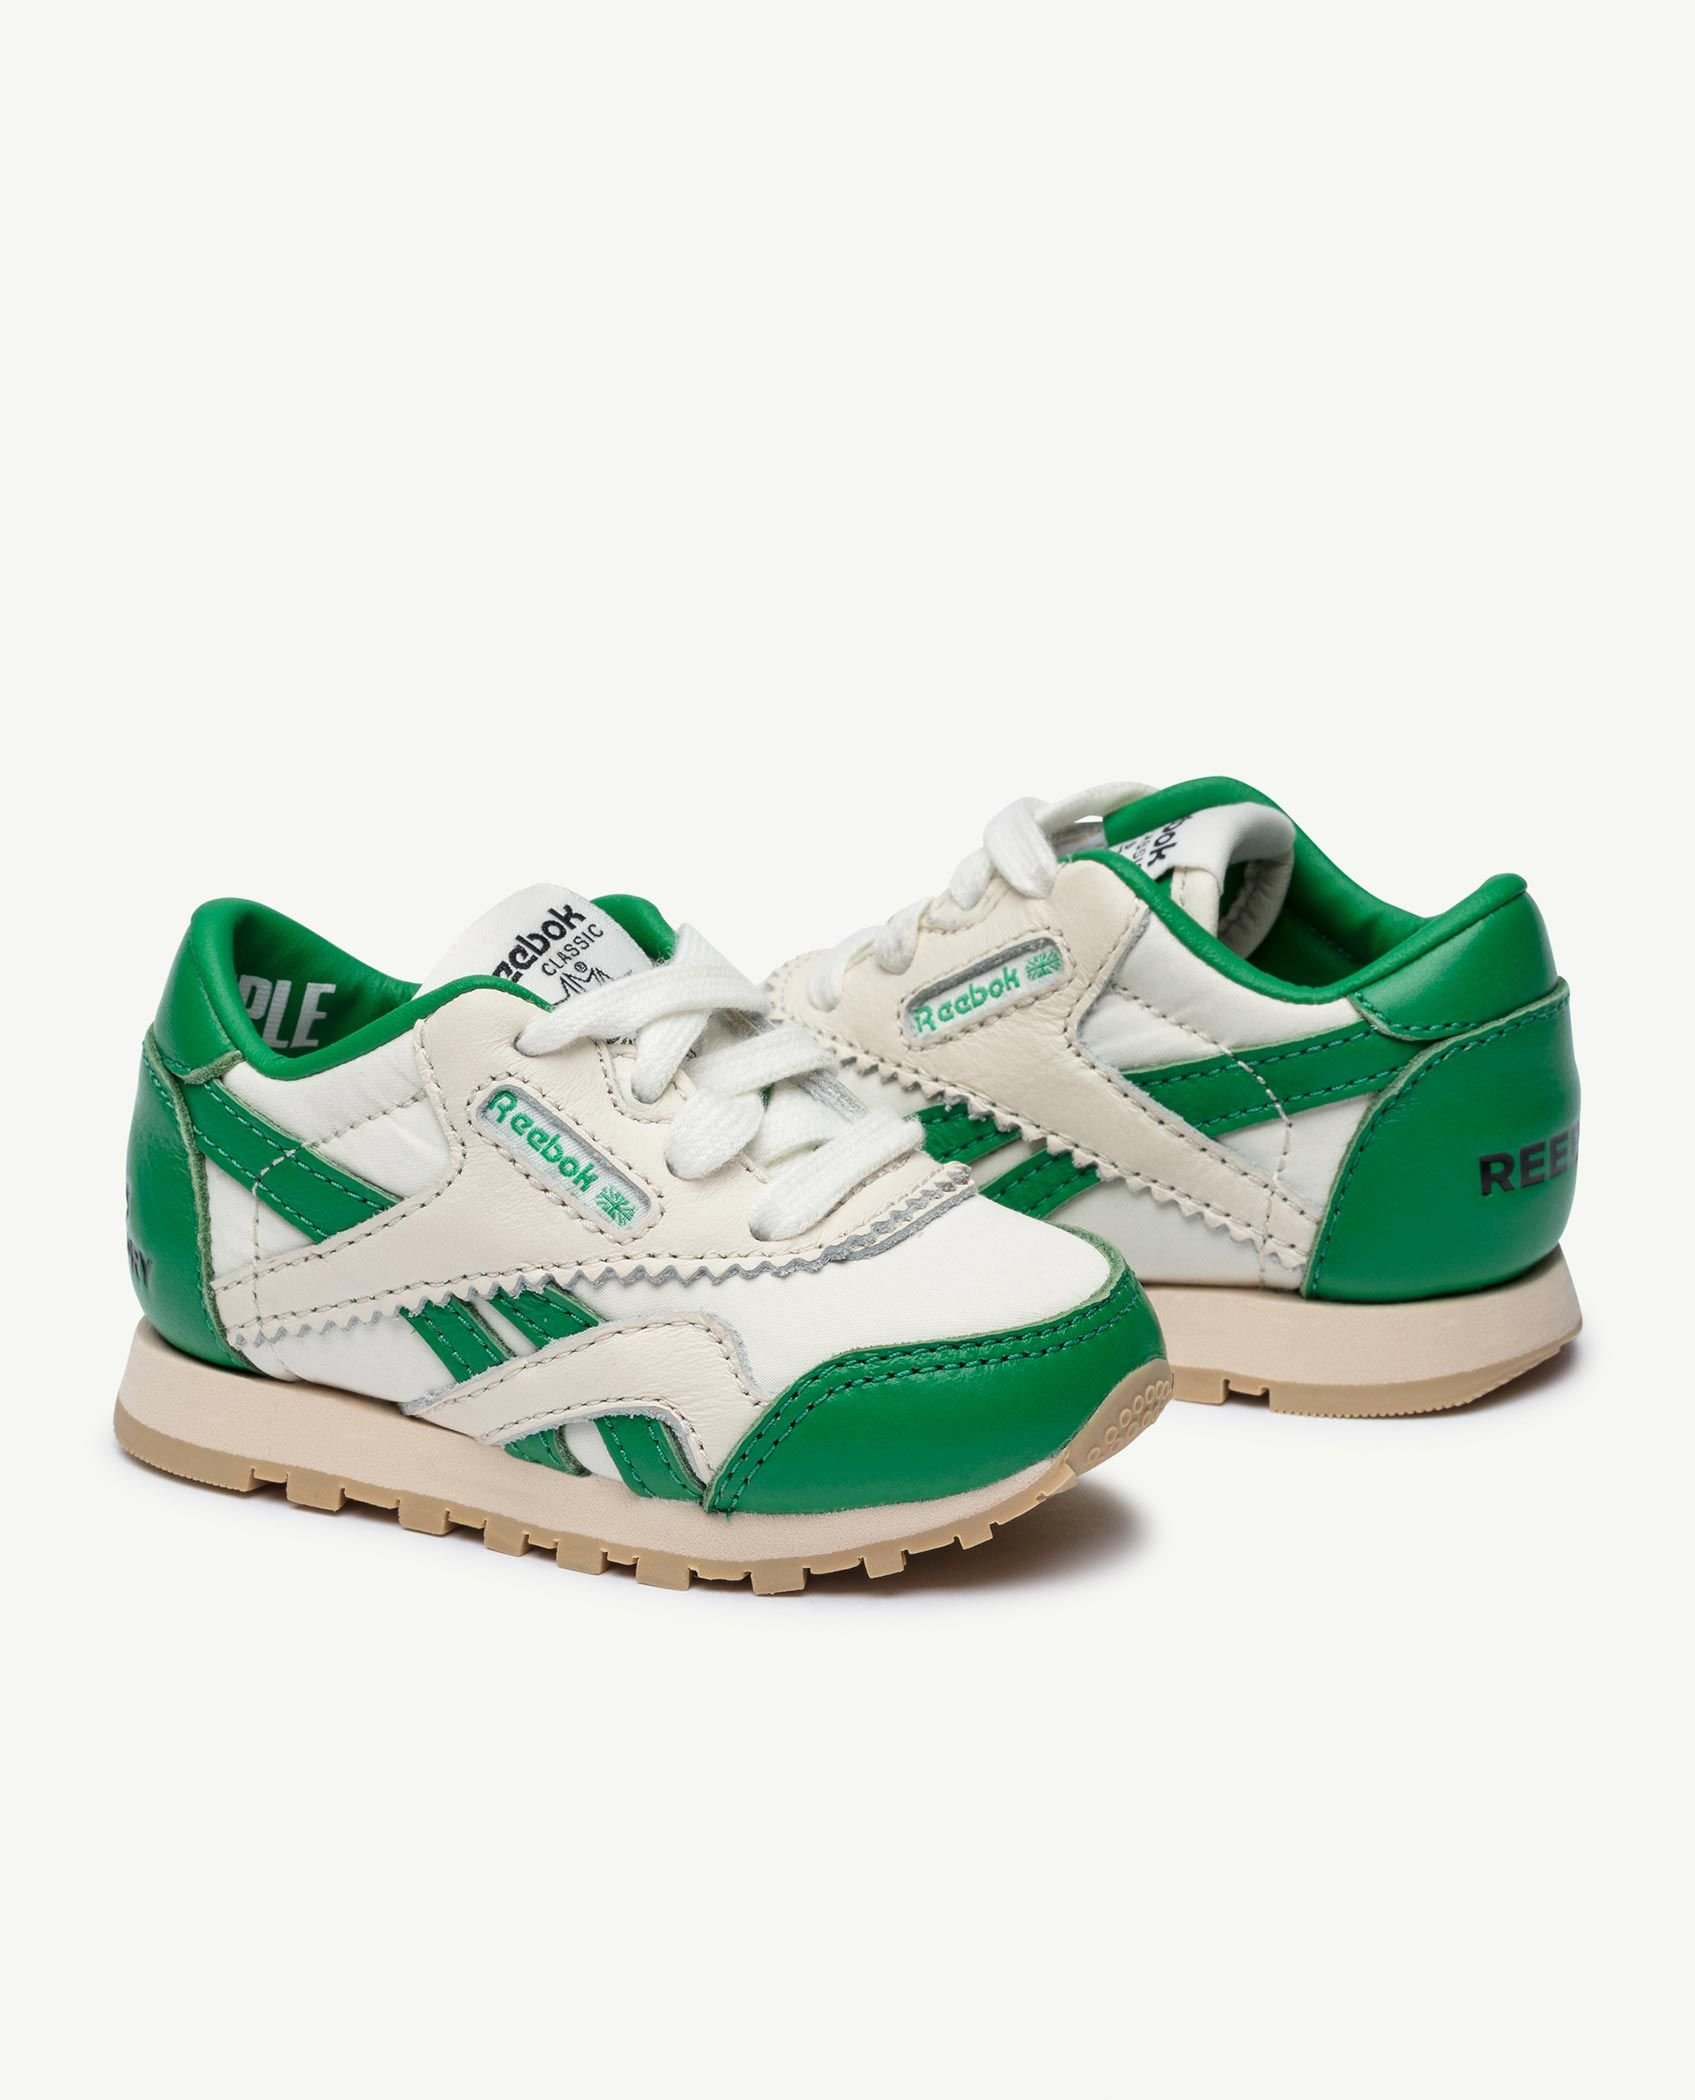 Reebok x The Animals Observatory Classic Nylon Green Baby img-3